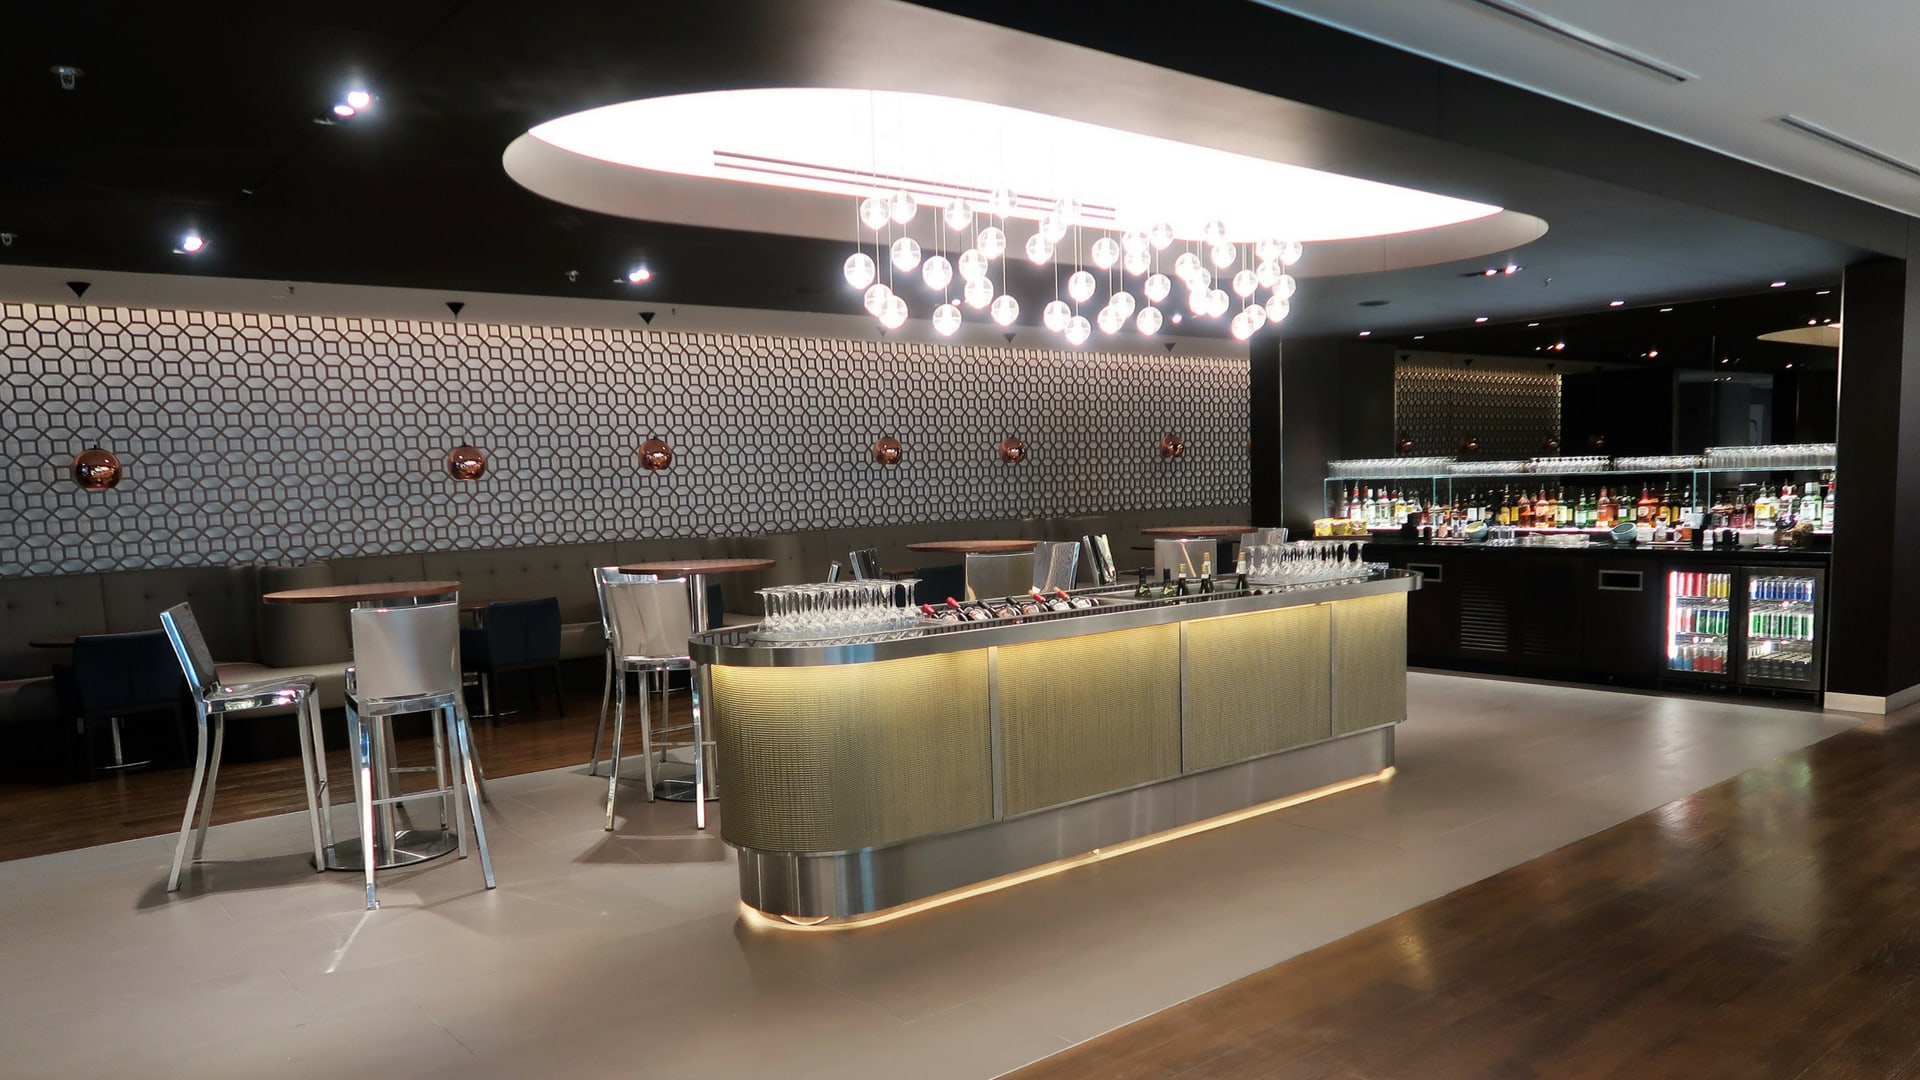 British Airways Singapore Lounge: A surprising visit